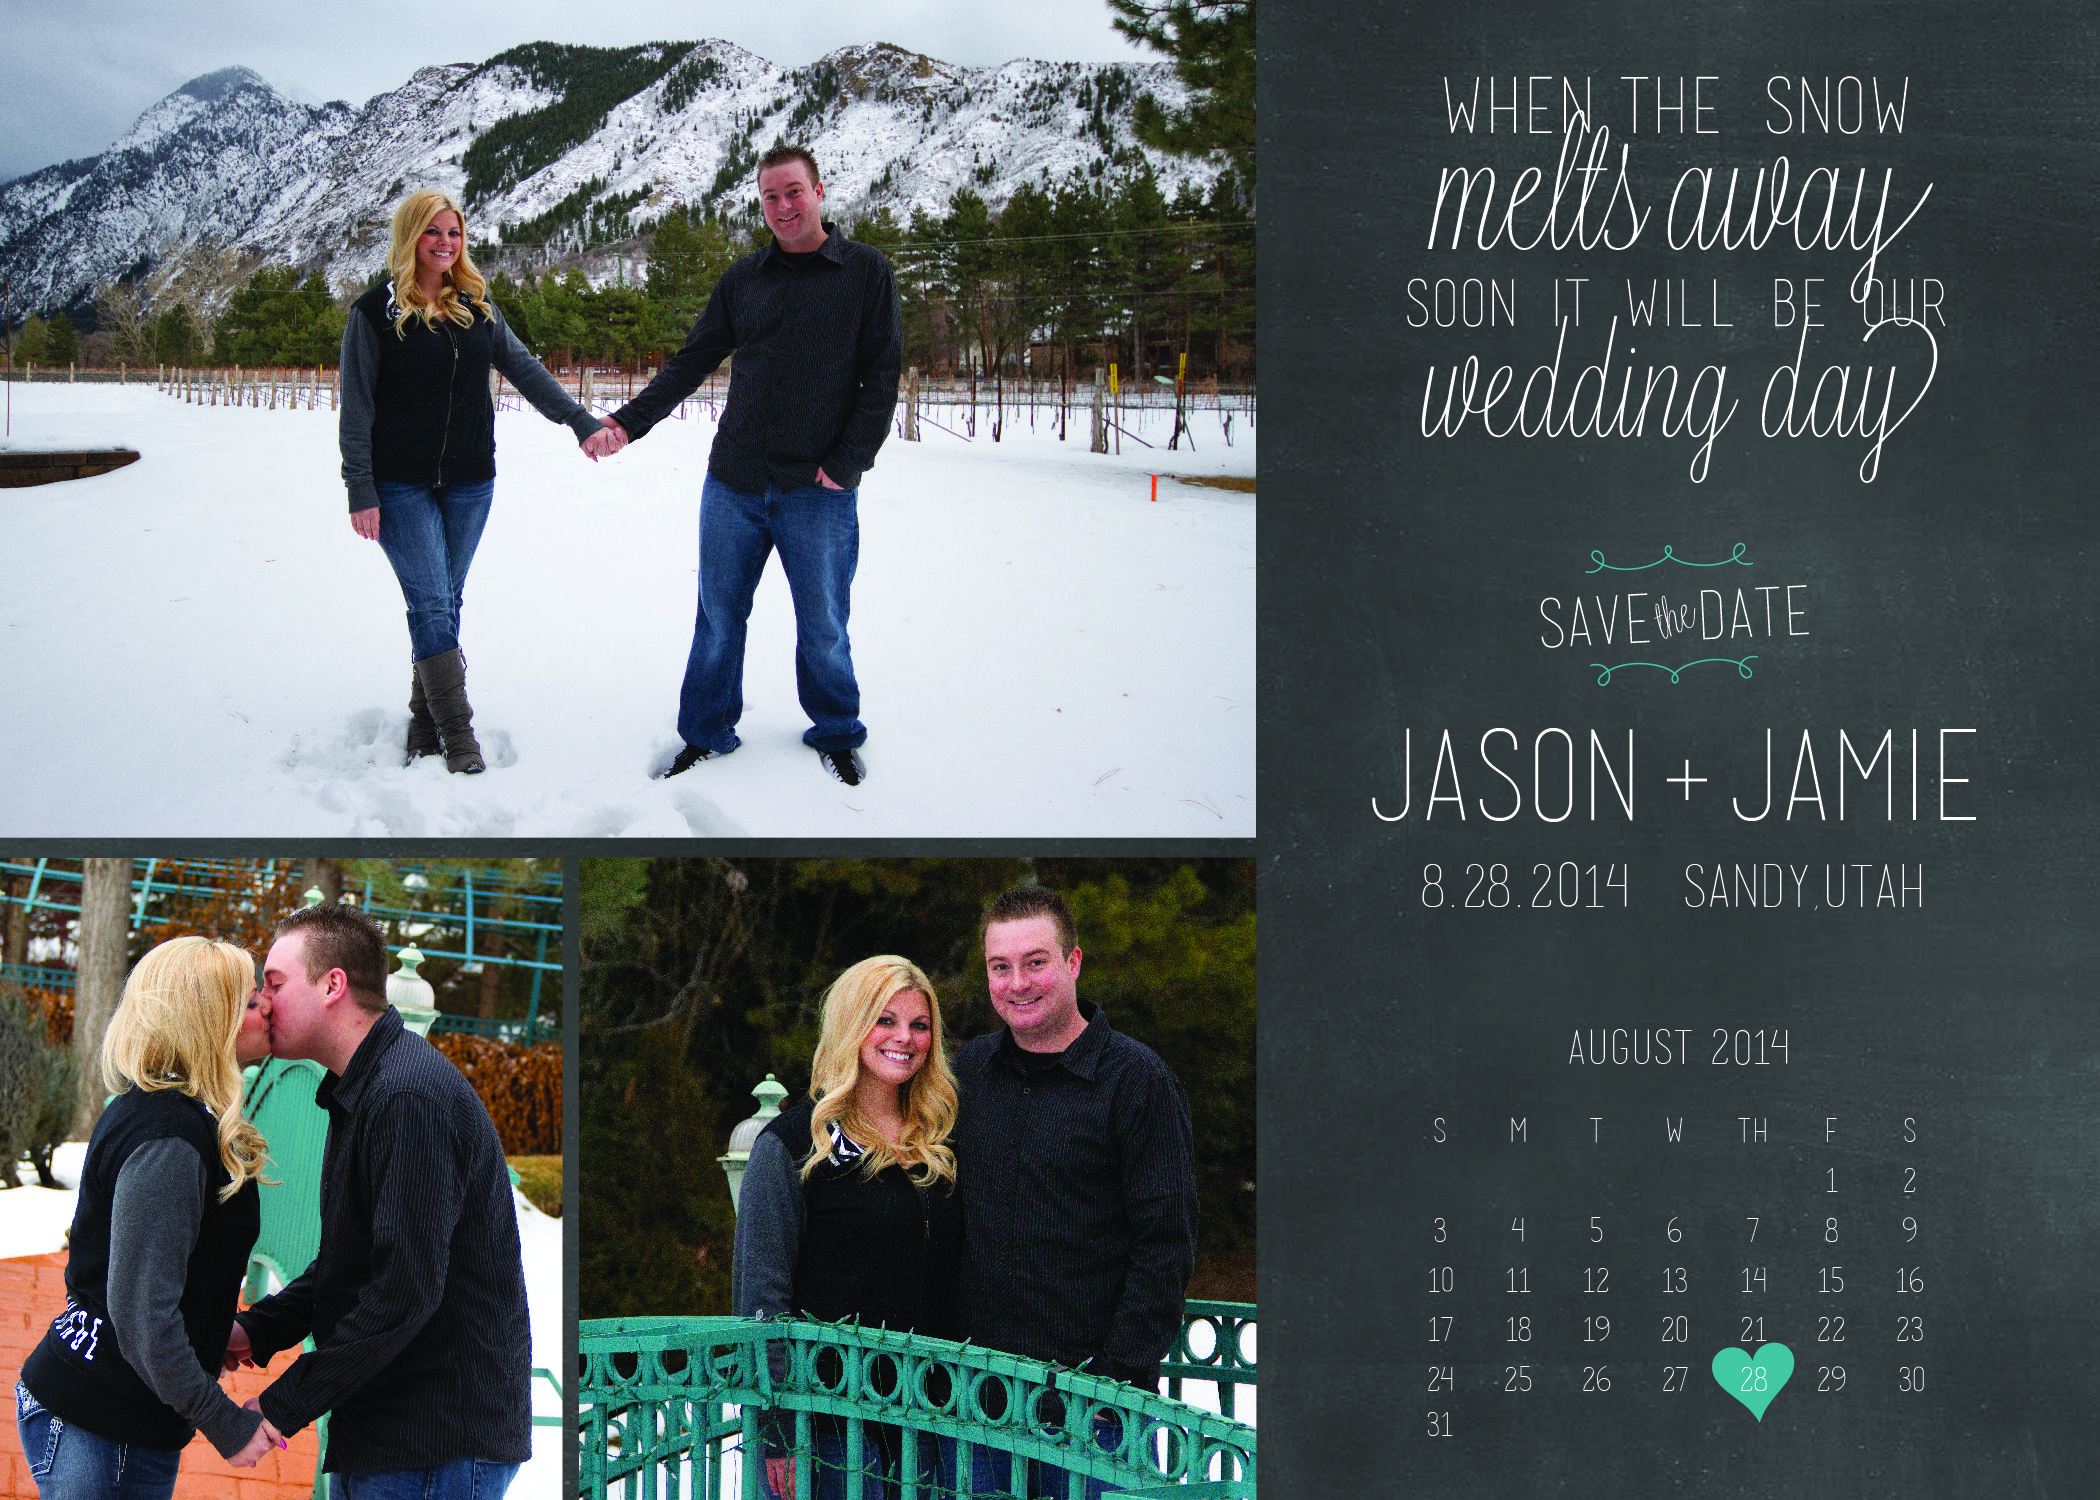 Wedding ideas.  Save the dates! Save the date ideas. Snow engagement pictures.